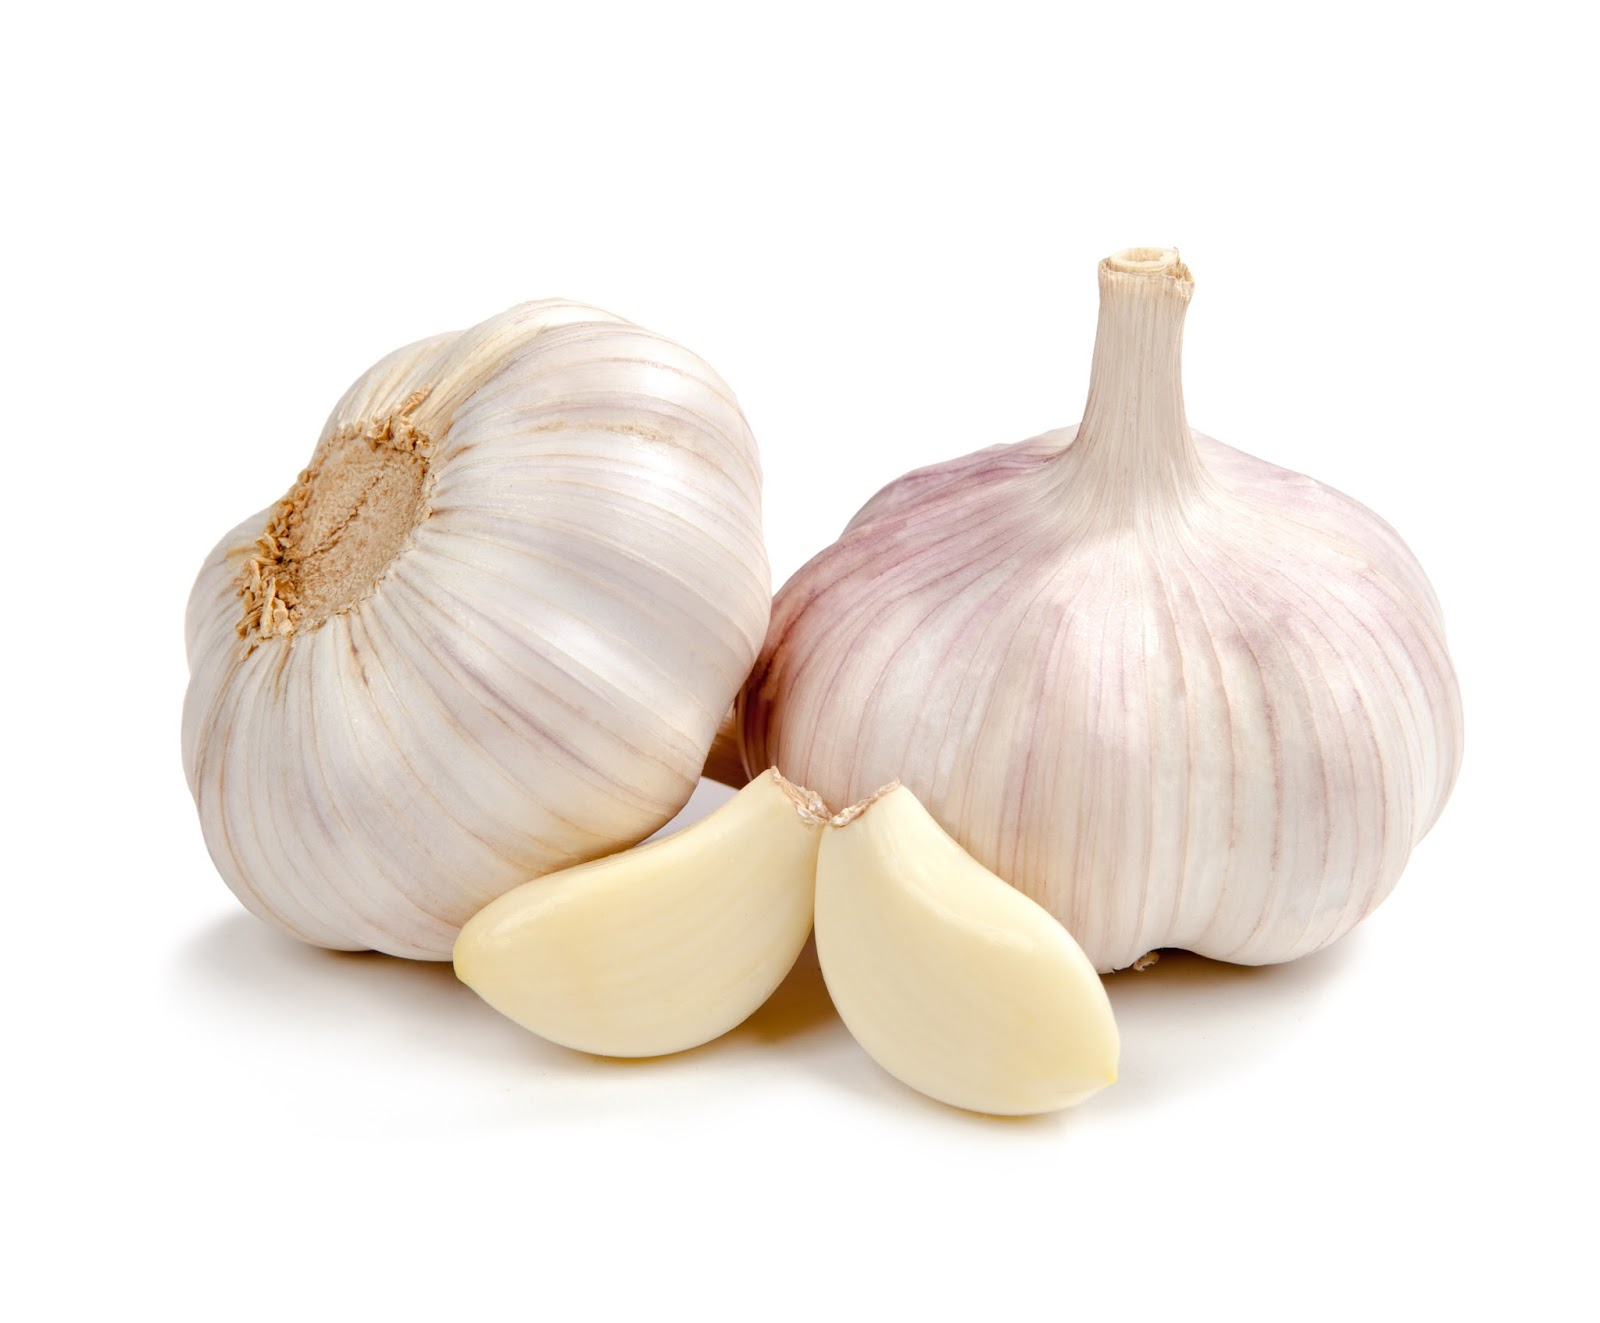 effectiveness of garlic cloves on blood pressure research The available research on garlic and blood pressure includes a report  researchers reviewed 10 clinical trials evaluating garlic's effects on blood pressure.